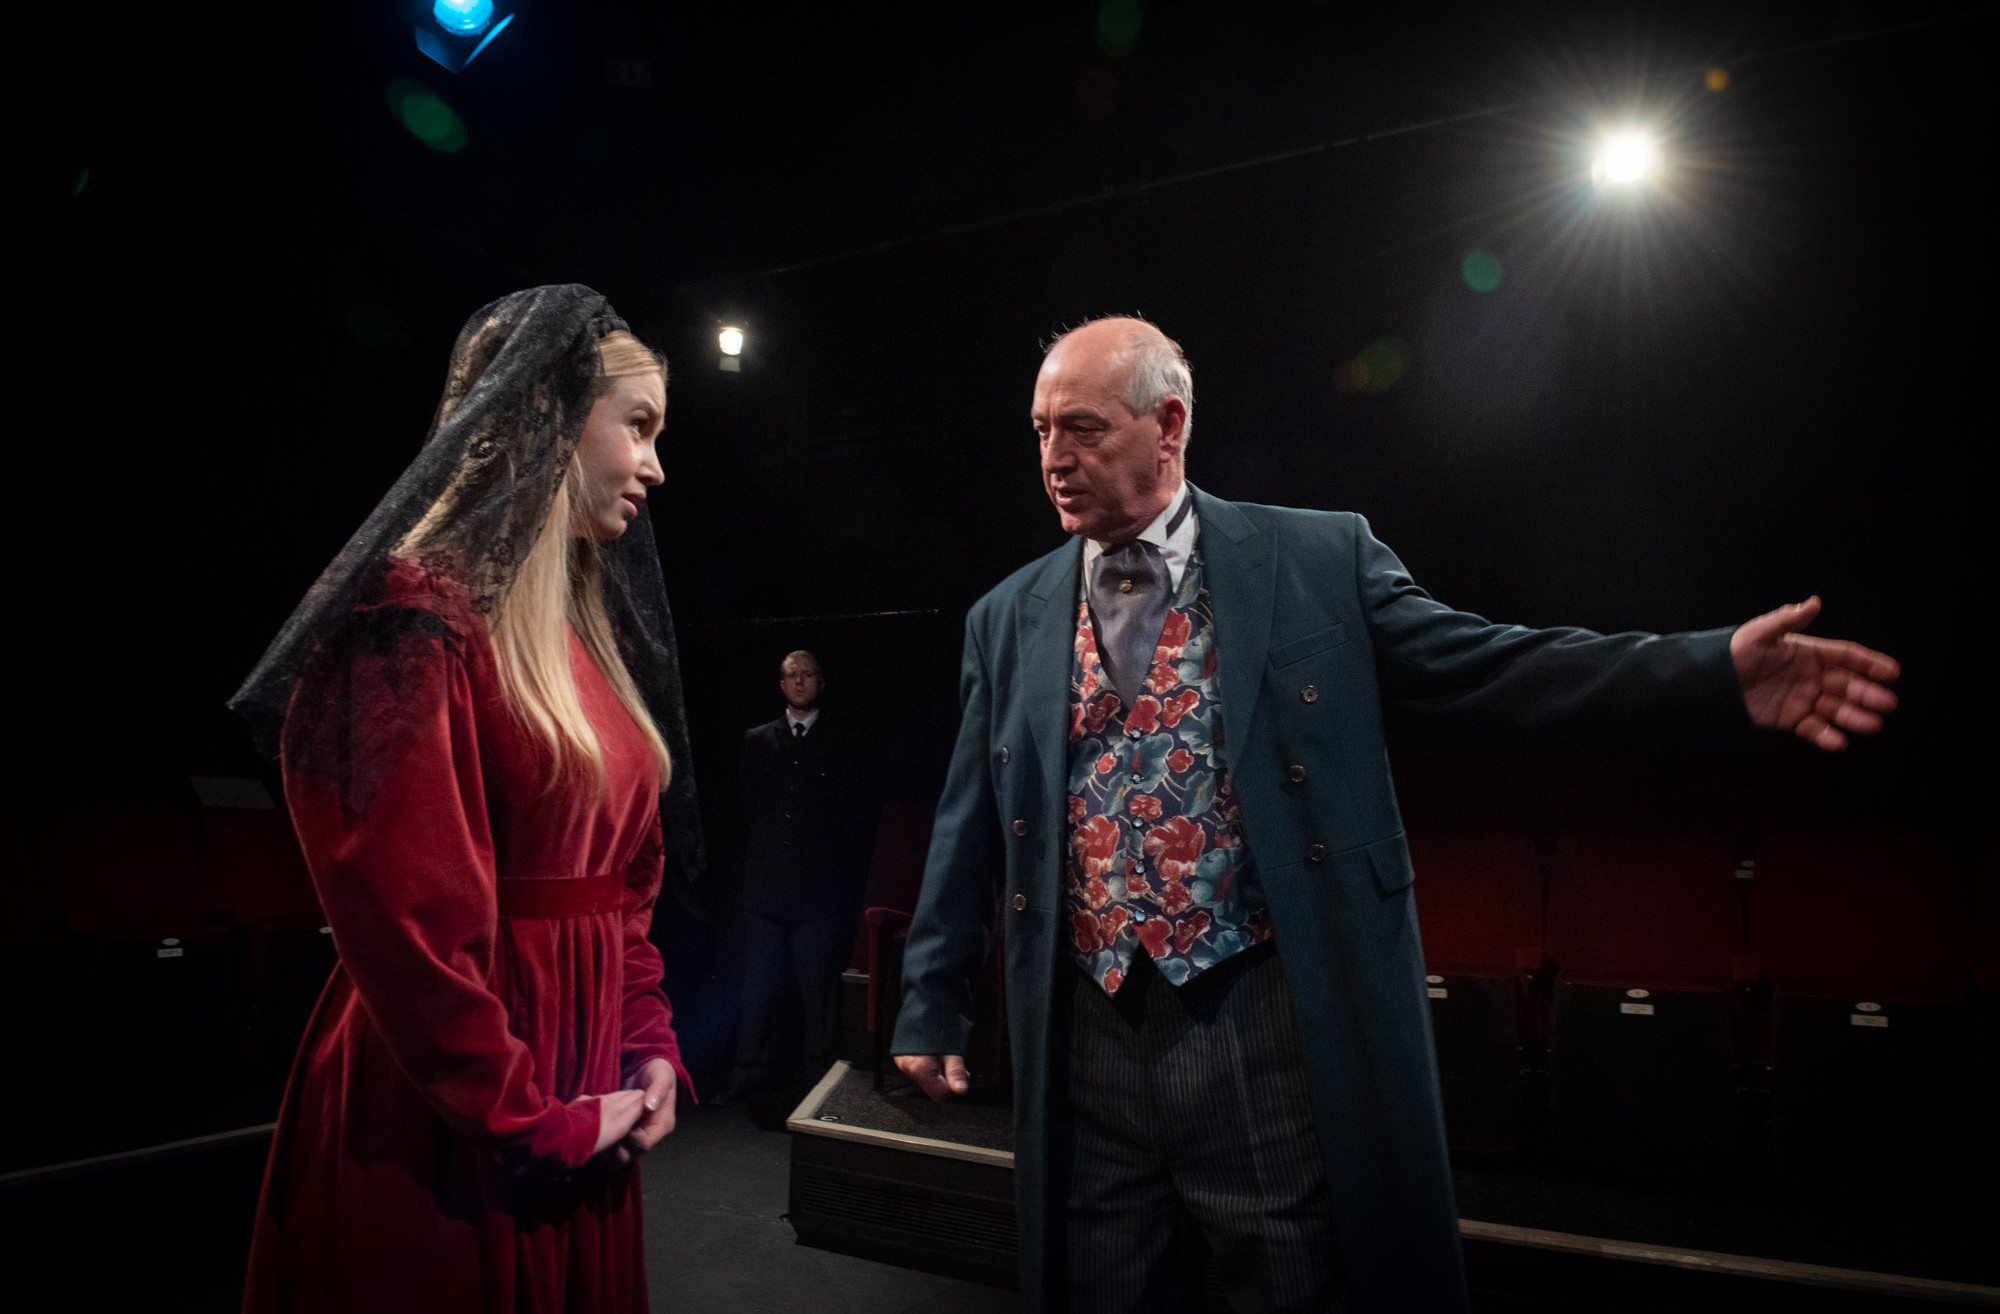 Bolton Little Theatre stage rehearsals of William Shakespeare play Measure for Measure featuring Rebecca Anderson as Marianna and Peter Scofield as the Duke